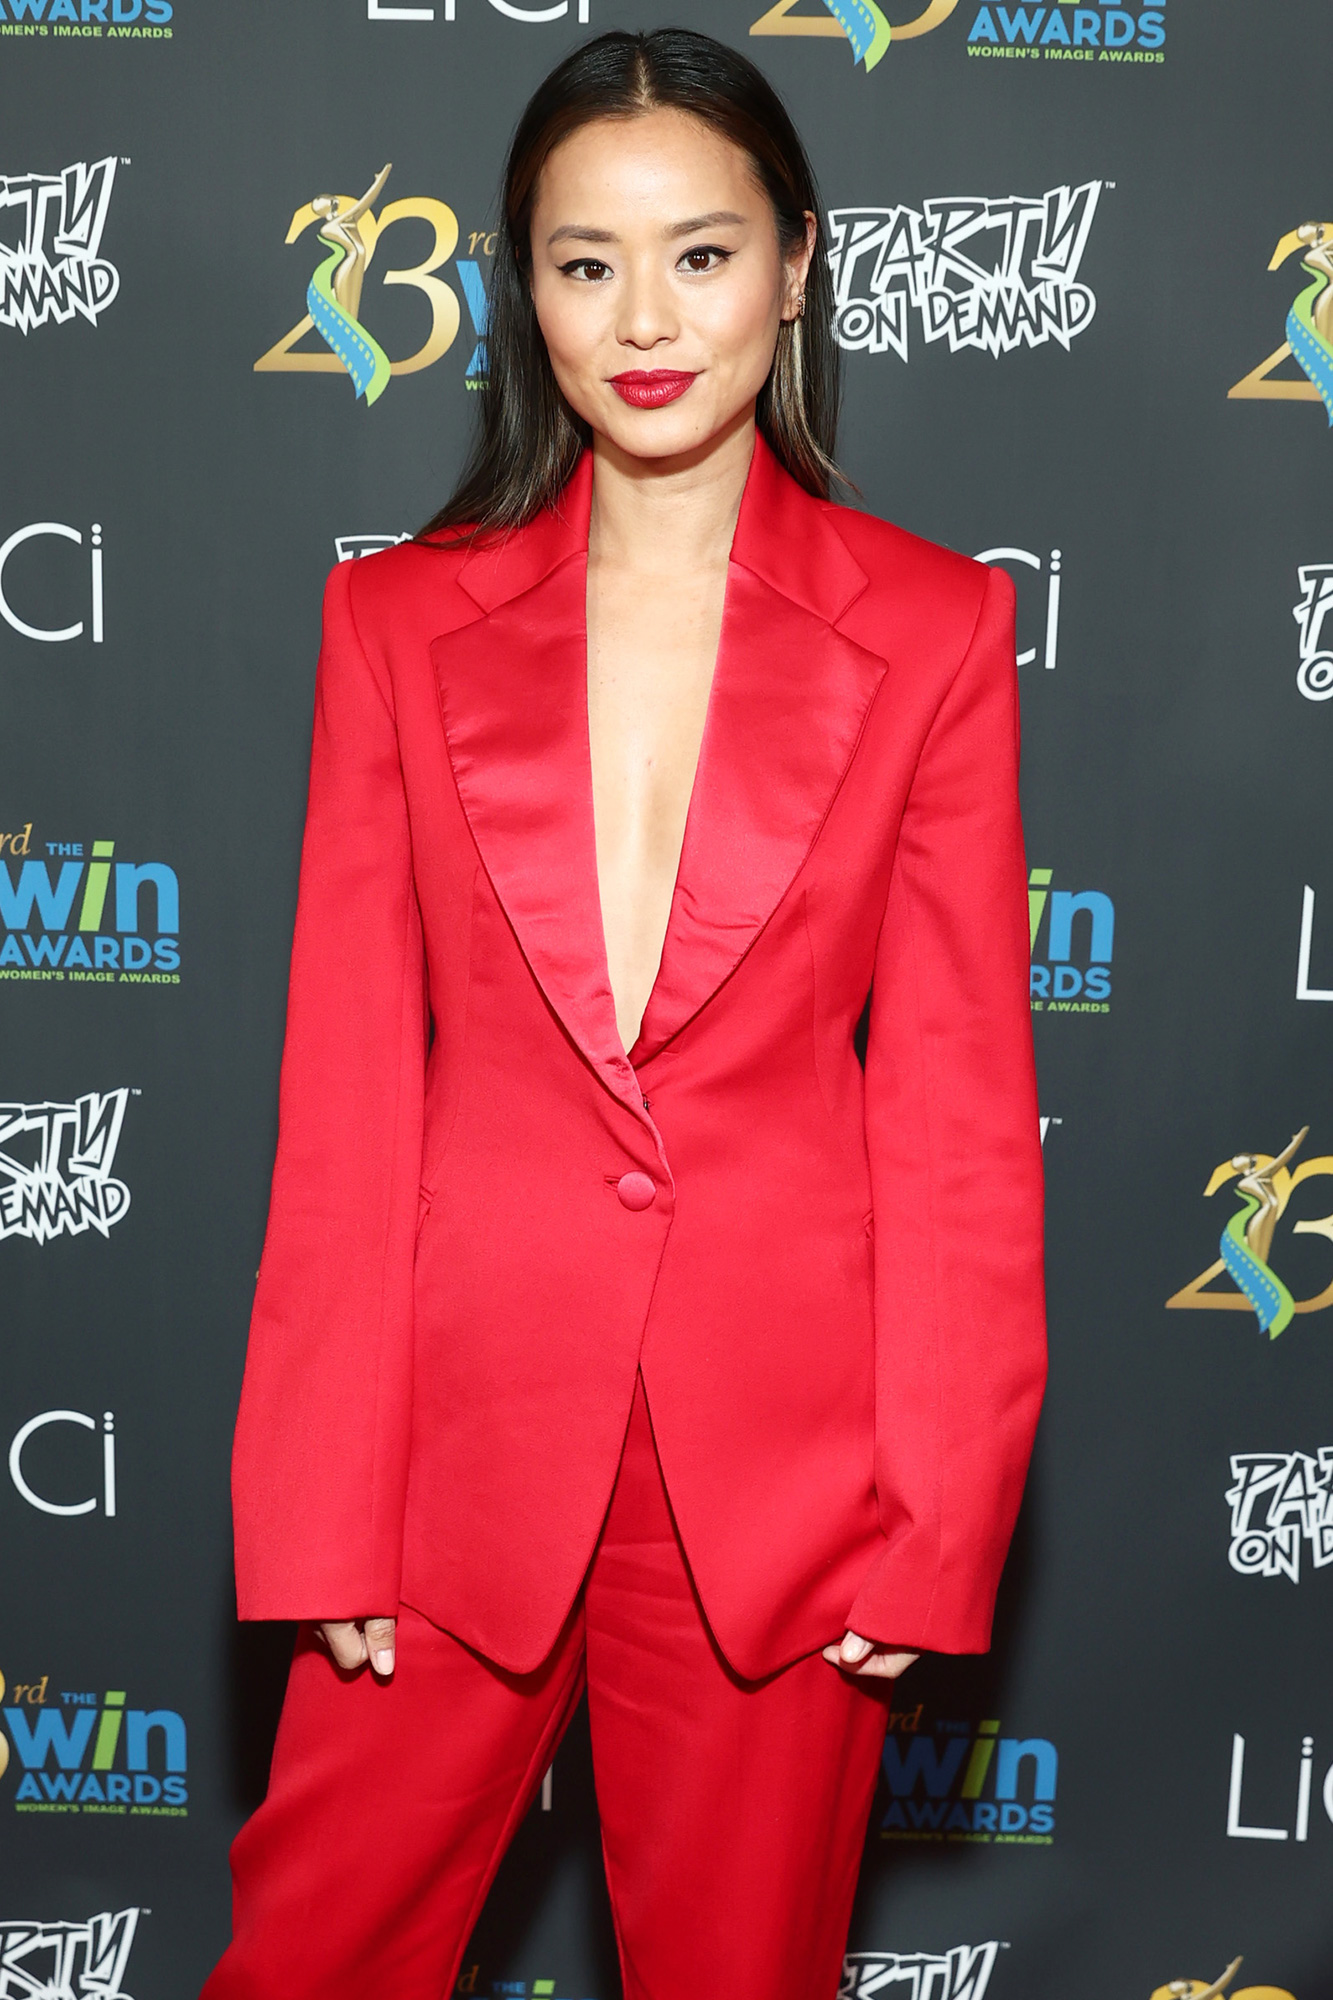 Jamie Chung attends the 23rd Women's Images Awards Presented By The Women's Image Network at Saban Theatre on October 14, 2021 in Beverly Hills, California.